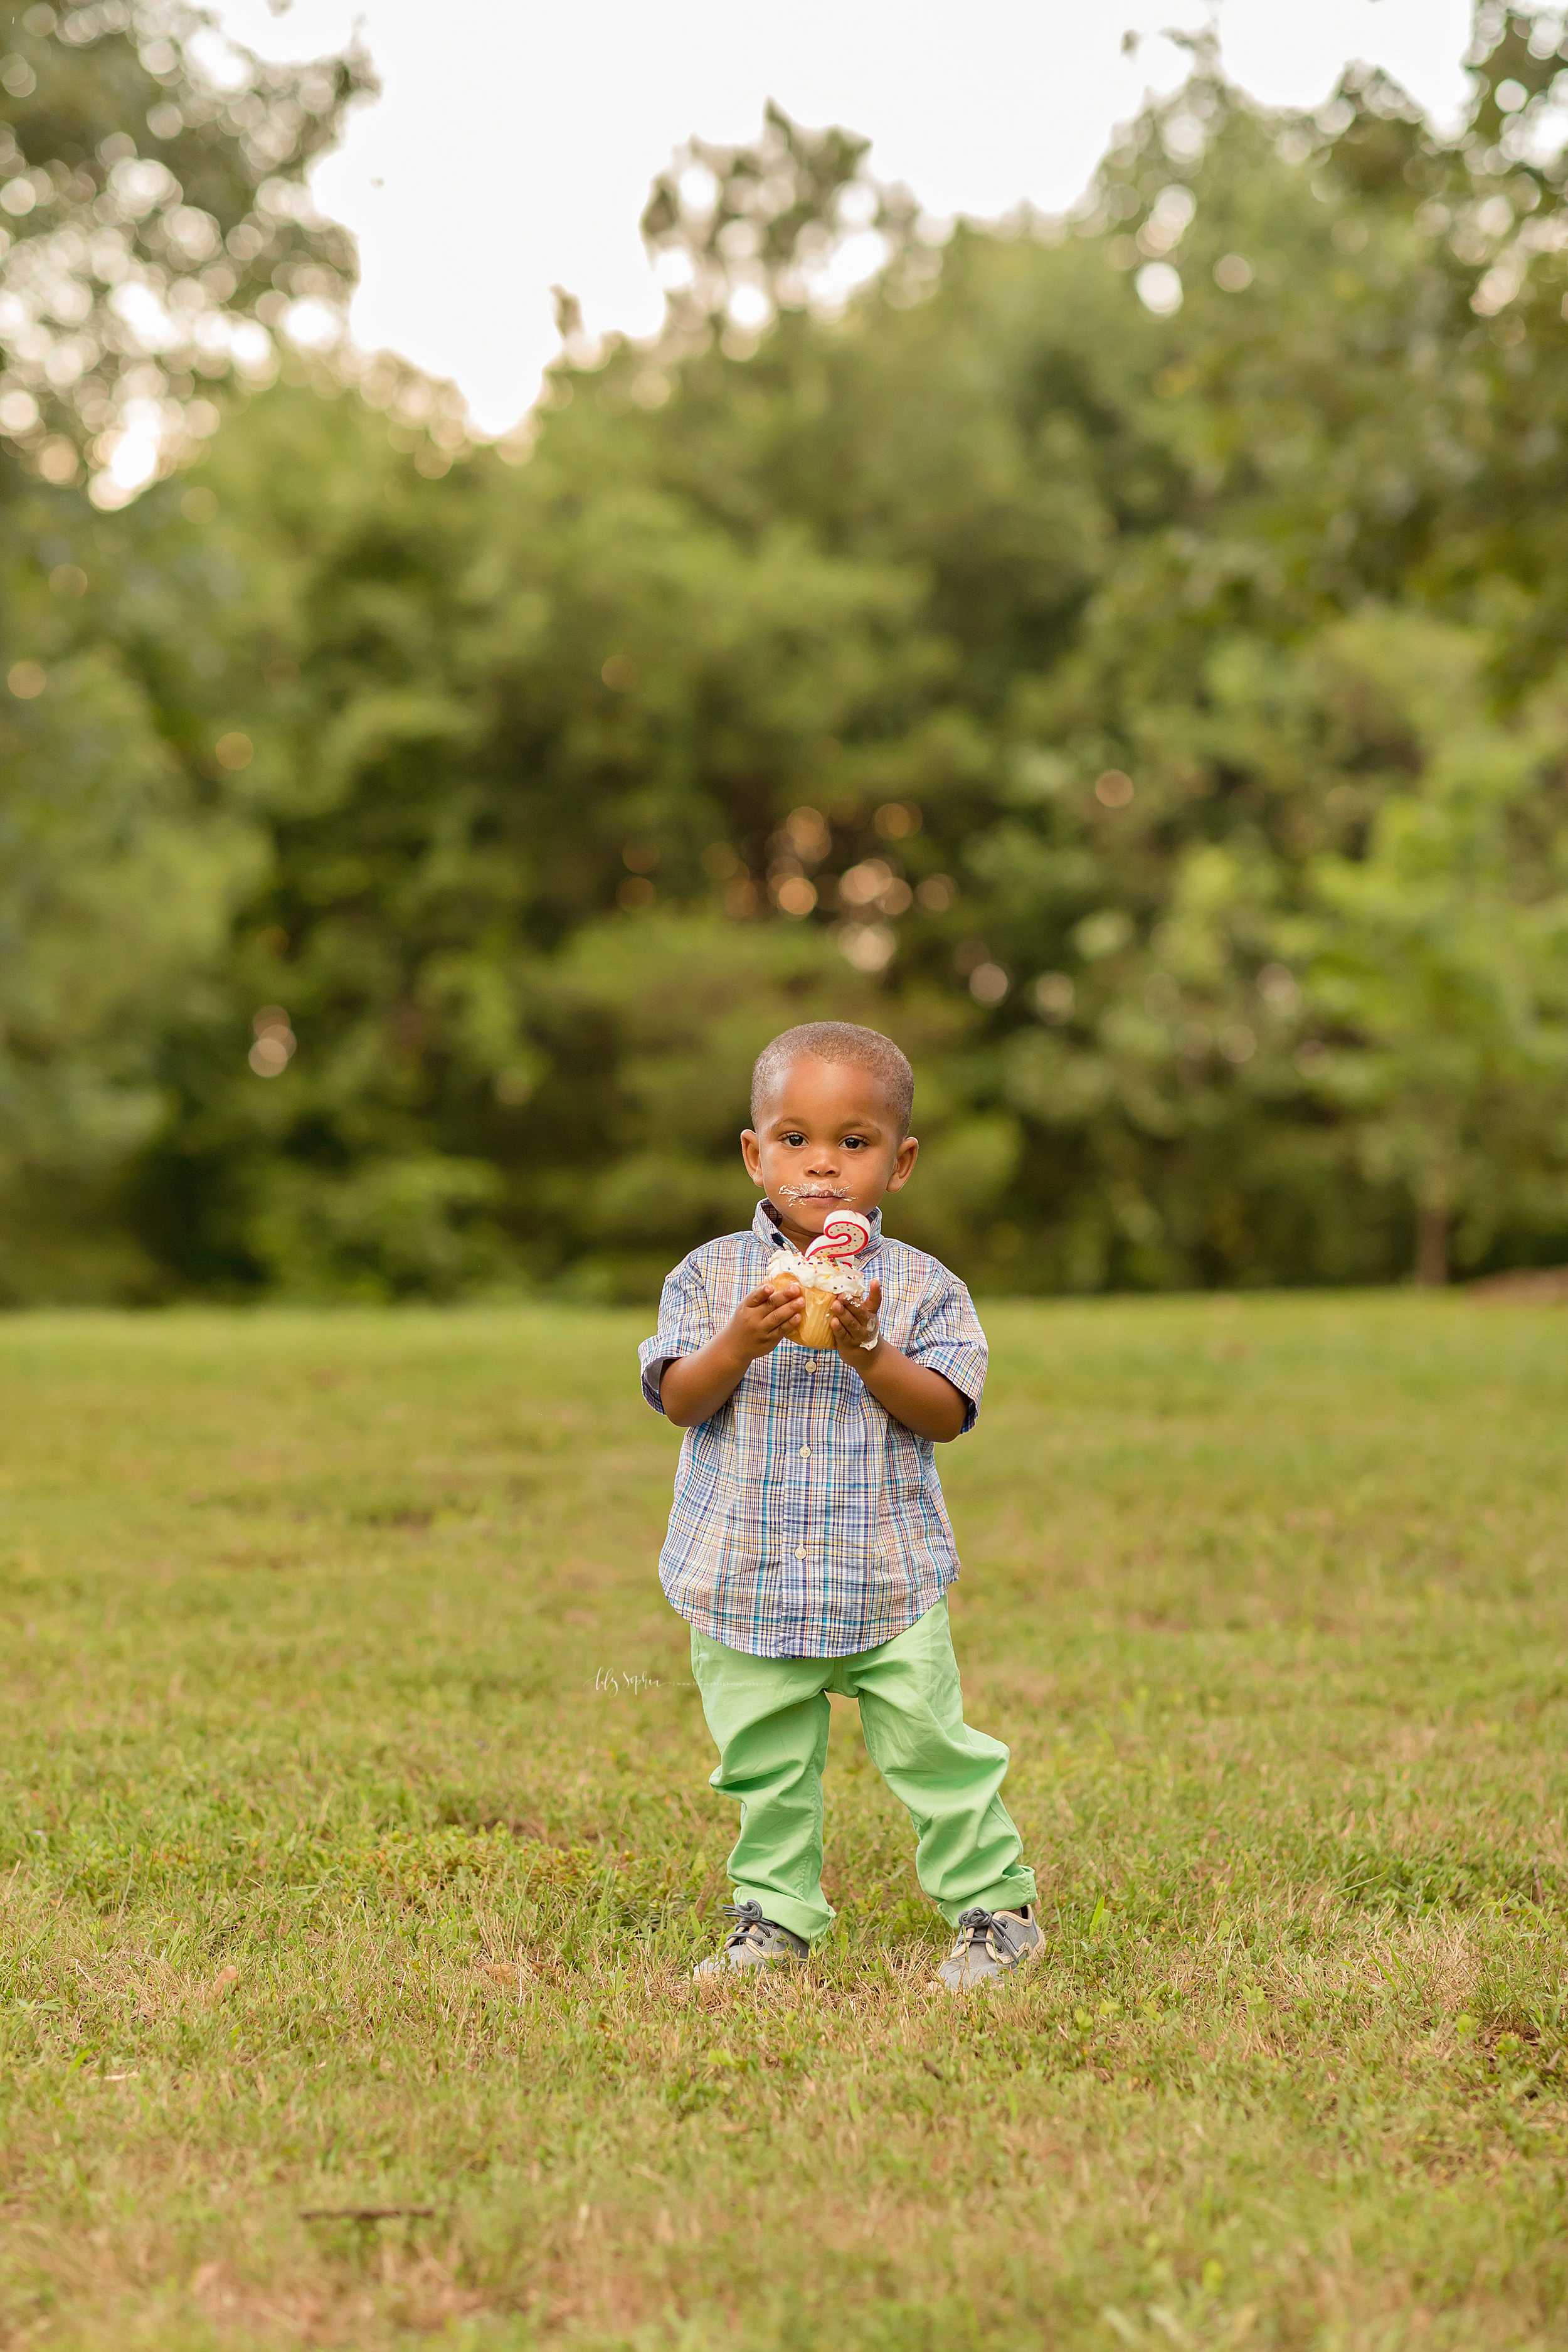 atlanta-hapeville-brookhaven-alpharetta-virginia-highlands-smyrna-decatur-lily-sophia-photography-outdoor-family-mother-toddler-son-second-birthday-park-sunset-pictures_0710.jpg